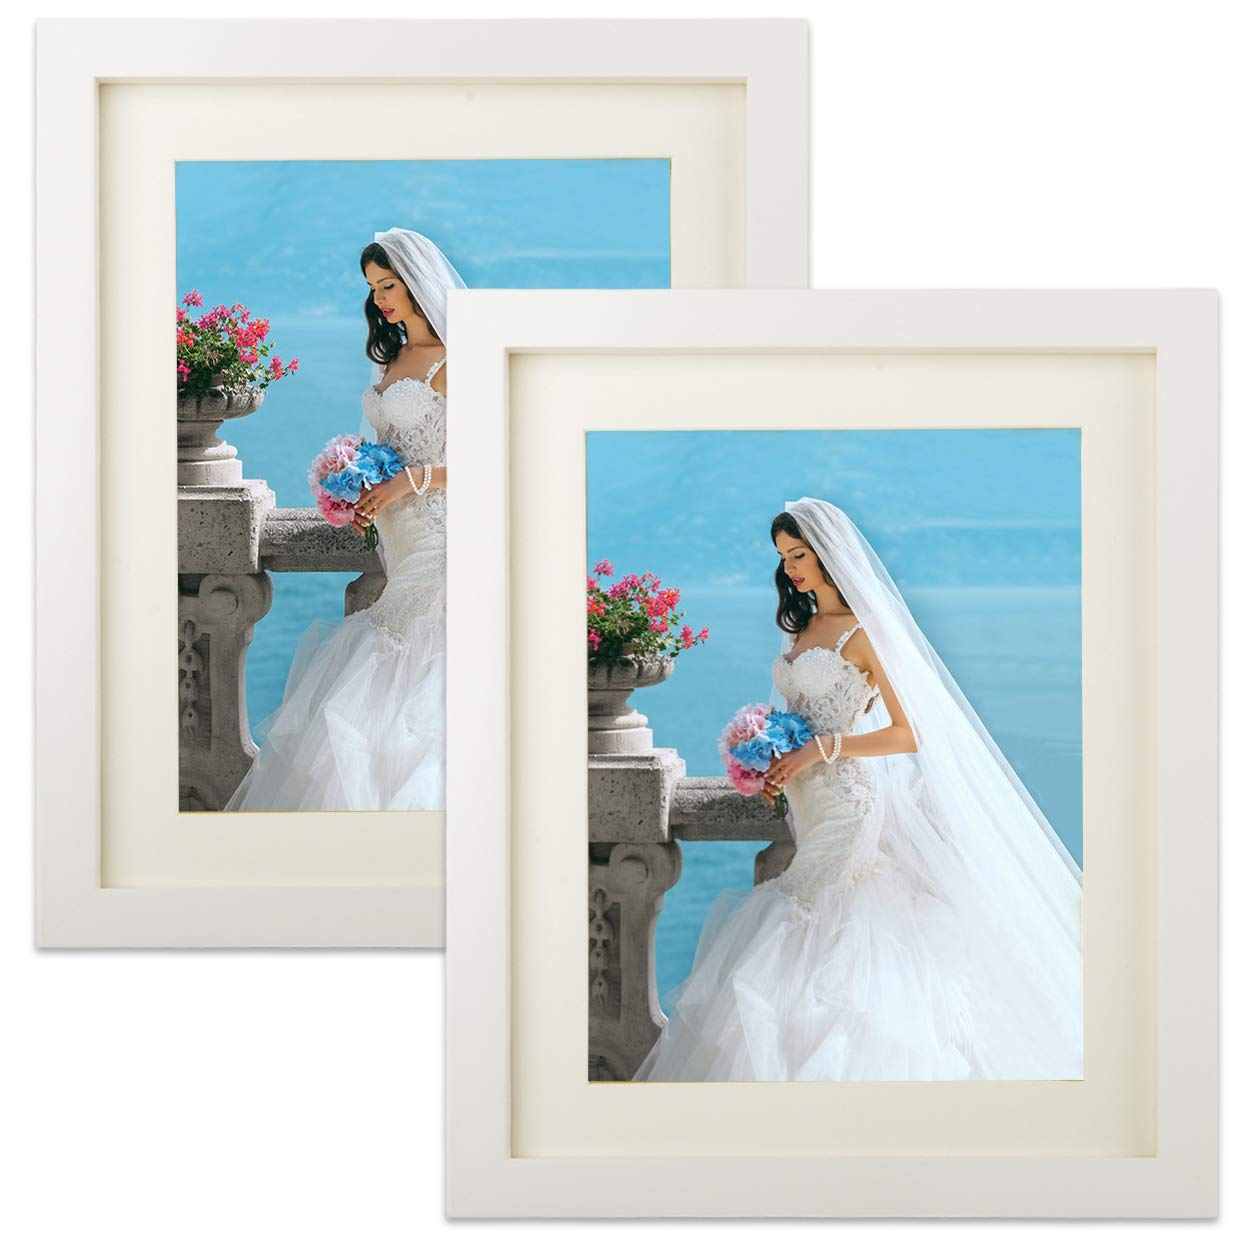 2 Pack Picture Frame 8x10 Display Photo 6x8 With Mat Wall Tabletop Frames Office Room Decor White